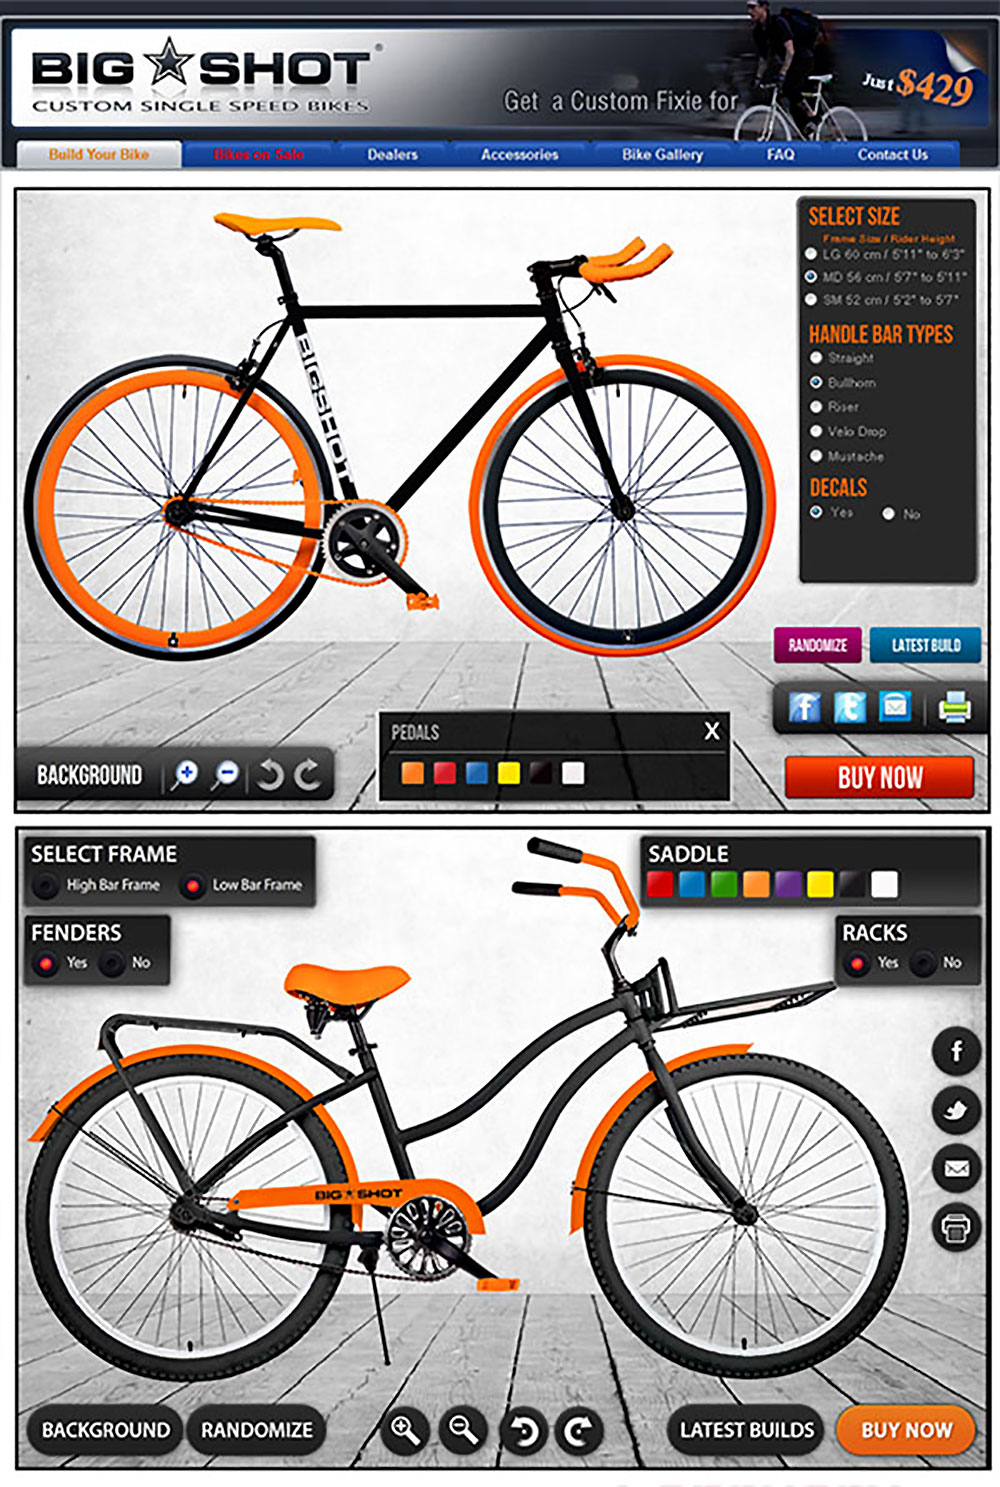 Les configurateurs de customisation vélo fixie singlespeed